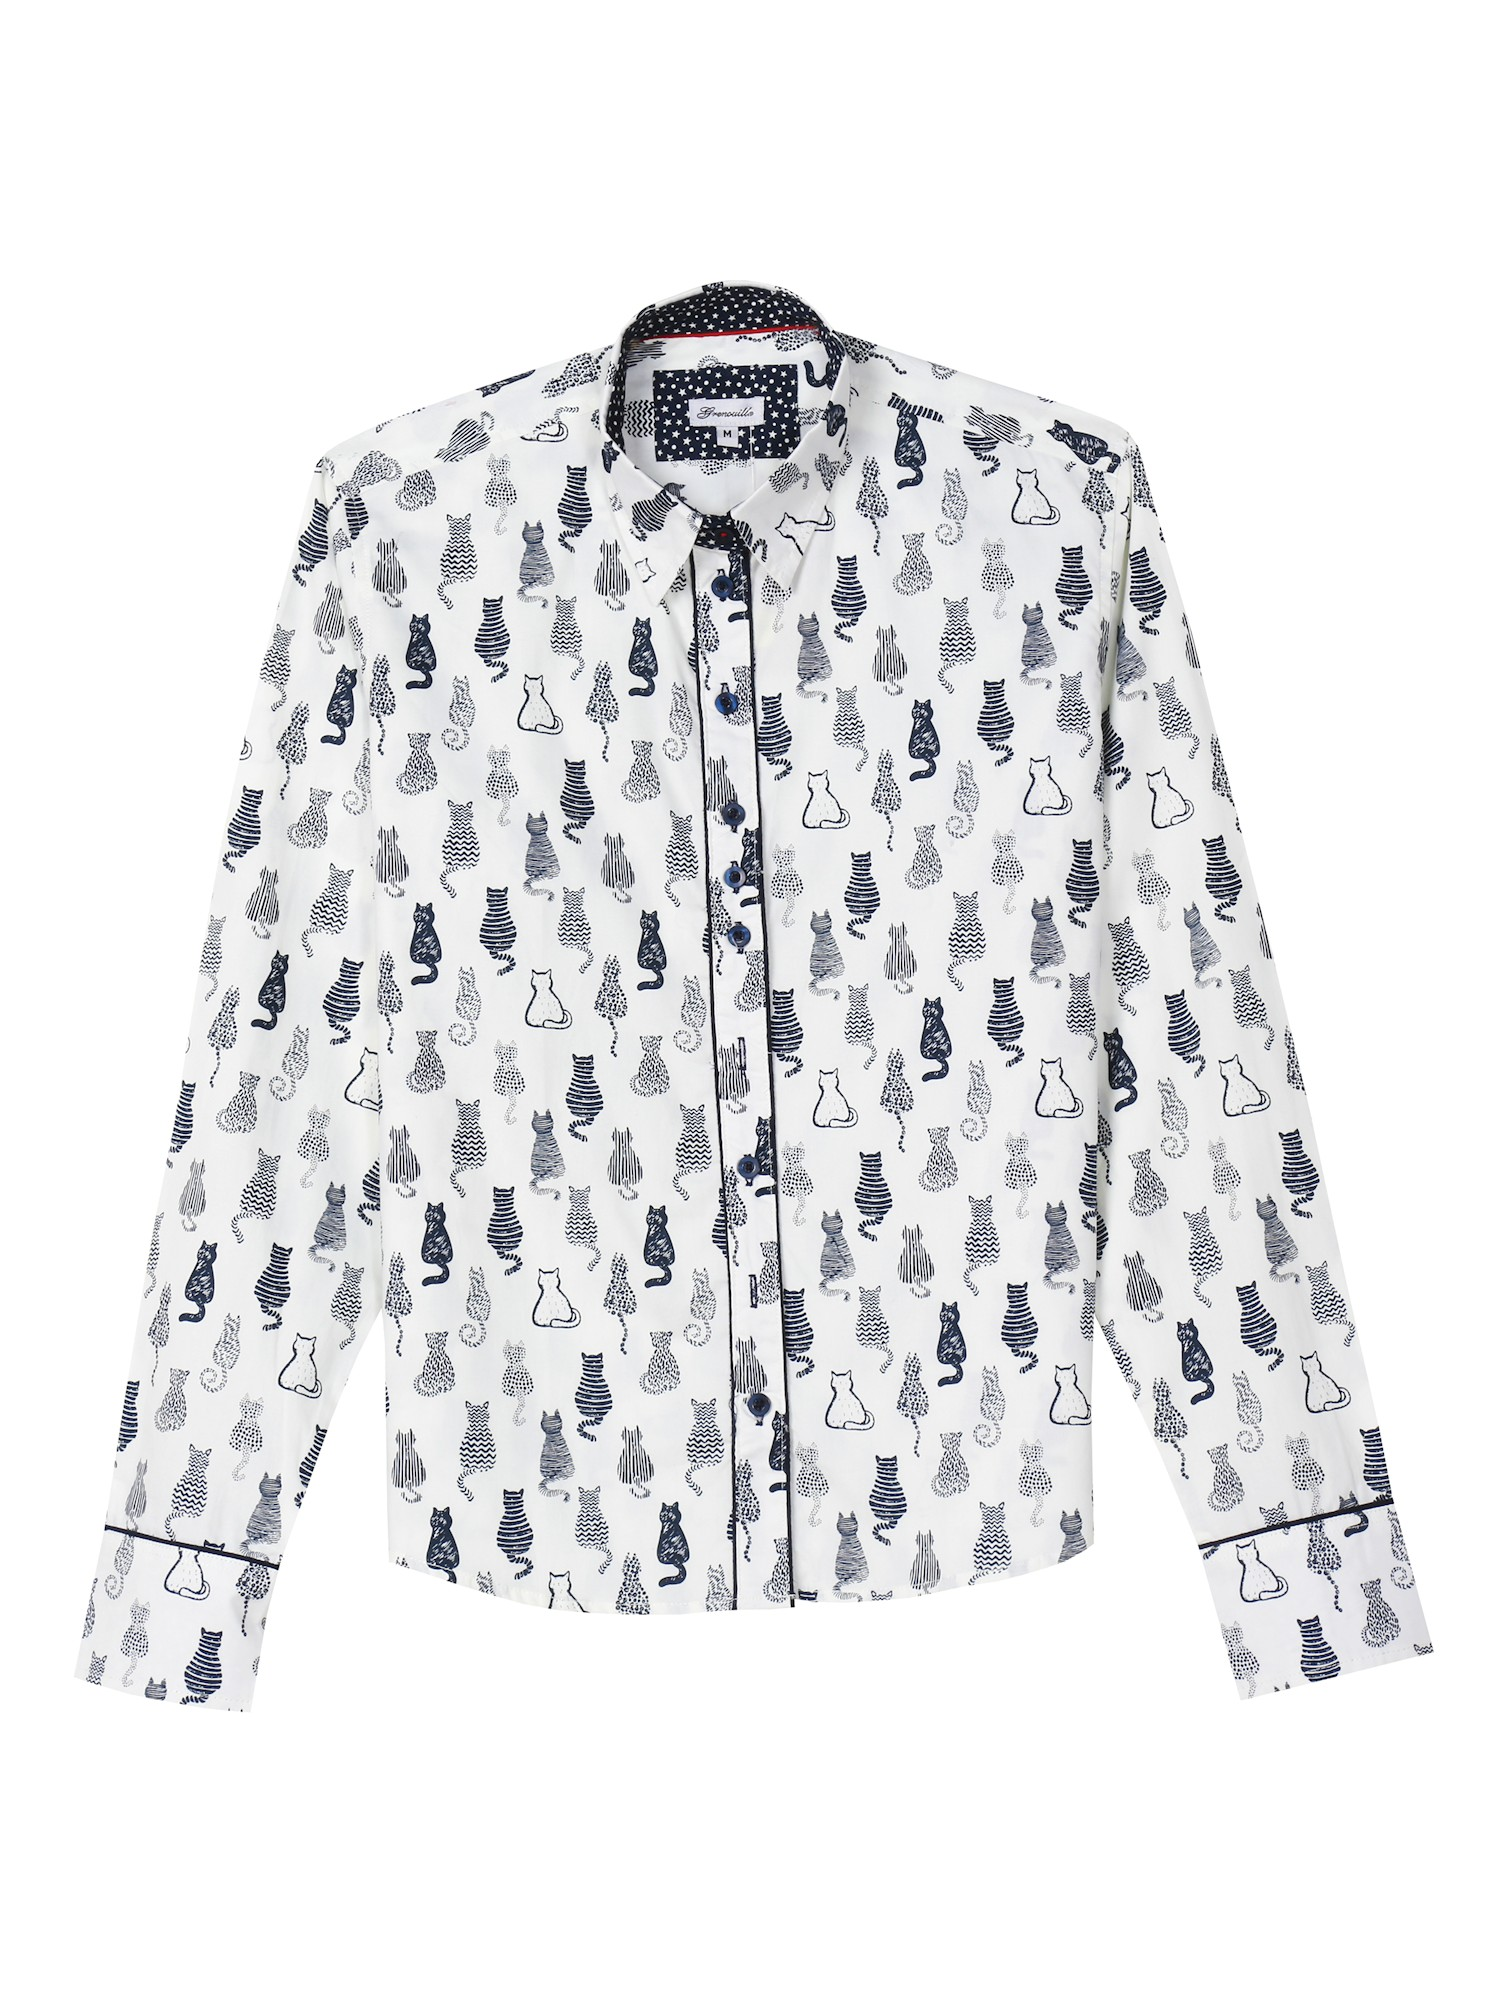 69f118822 What on Earth - What on Earth Women's Cat Print Oxford Top - Black & White  Button Down Shirt - Walmart.com